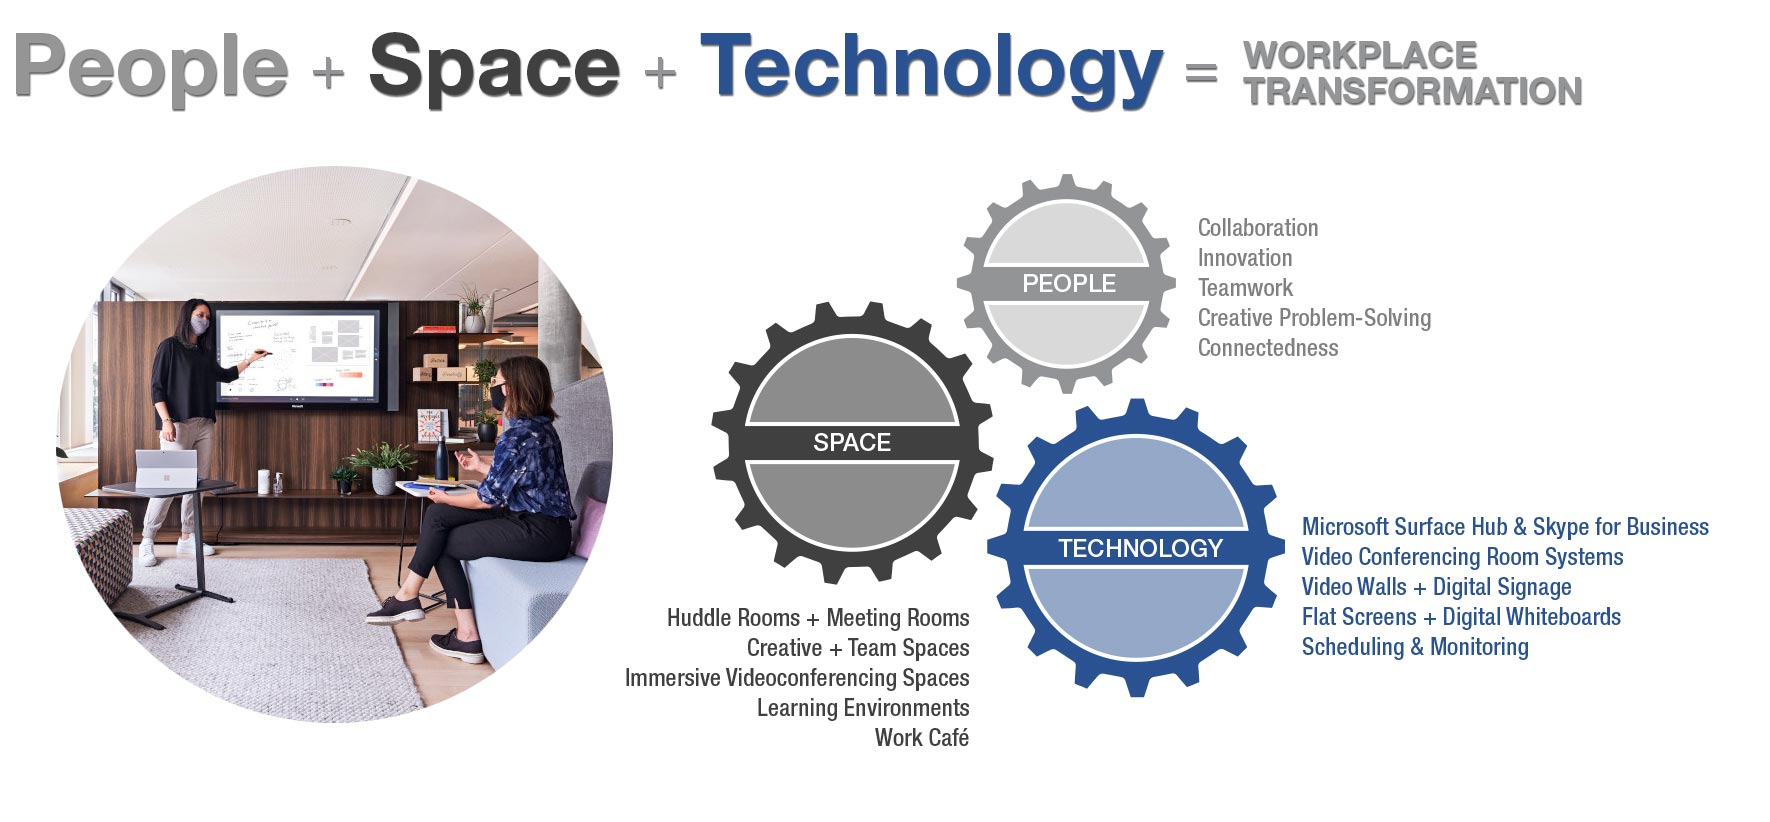 people plus space plus technology drive the way we work